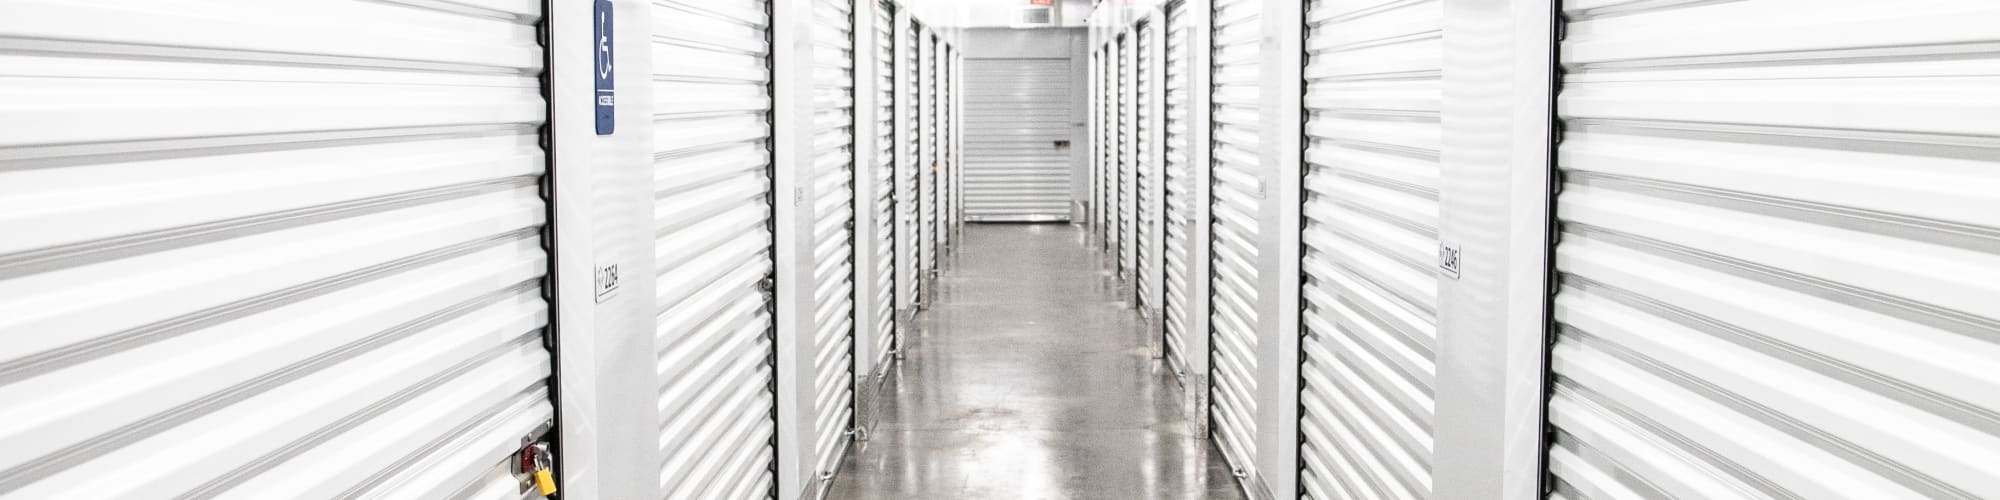 Unit sizes and prices for My Neighborhood Storage Center in Jacksonville, Florida